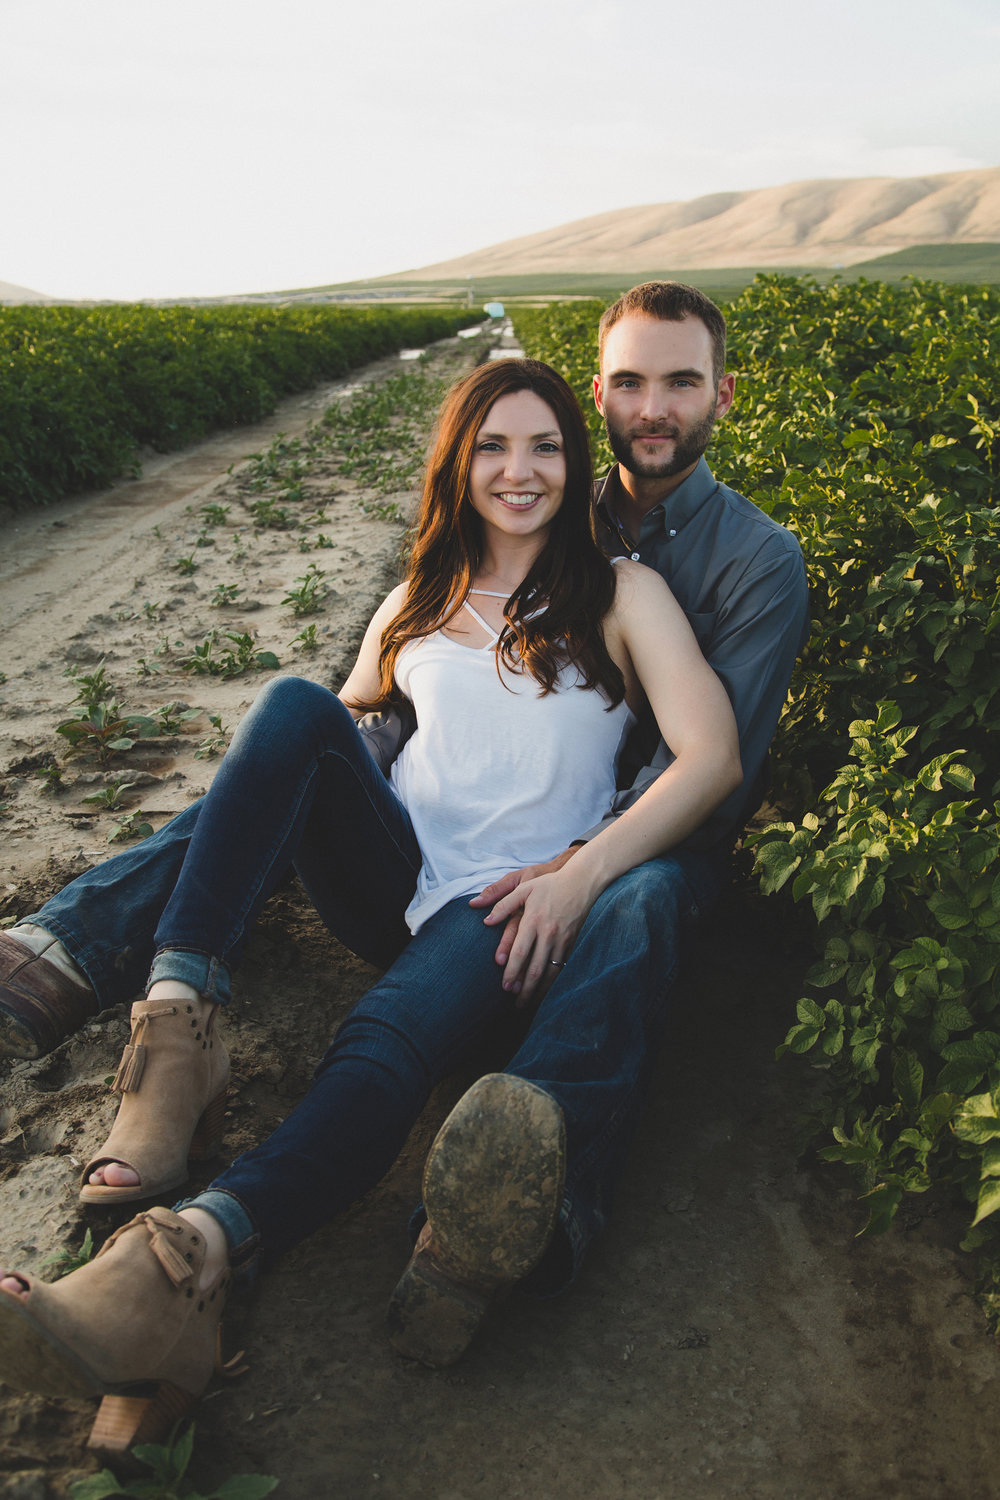 Tri cities engagement photographer_tri cities_engagement_tri cities wedding photographer_engagement photos_Kennewick_richland_wedding wednesday_Jordan Edens Photography_6